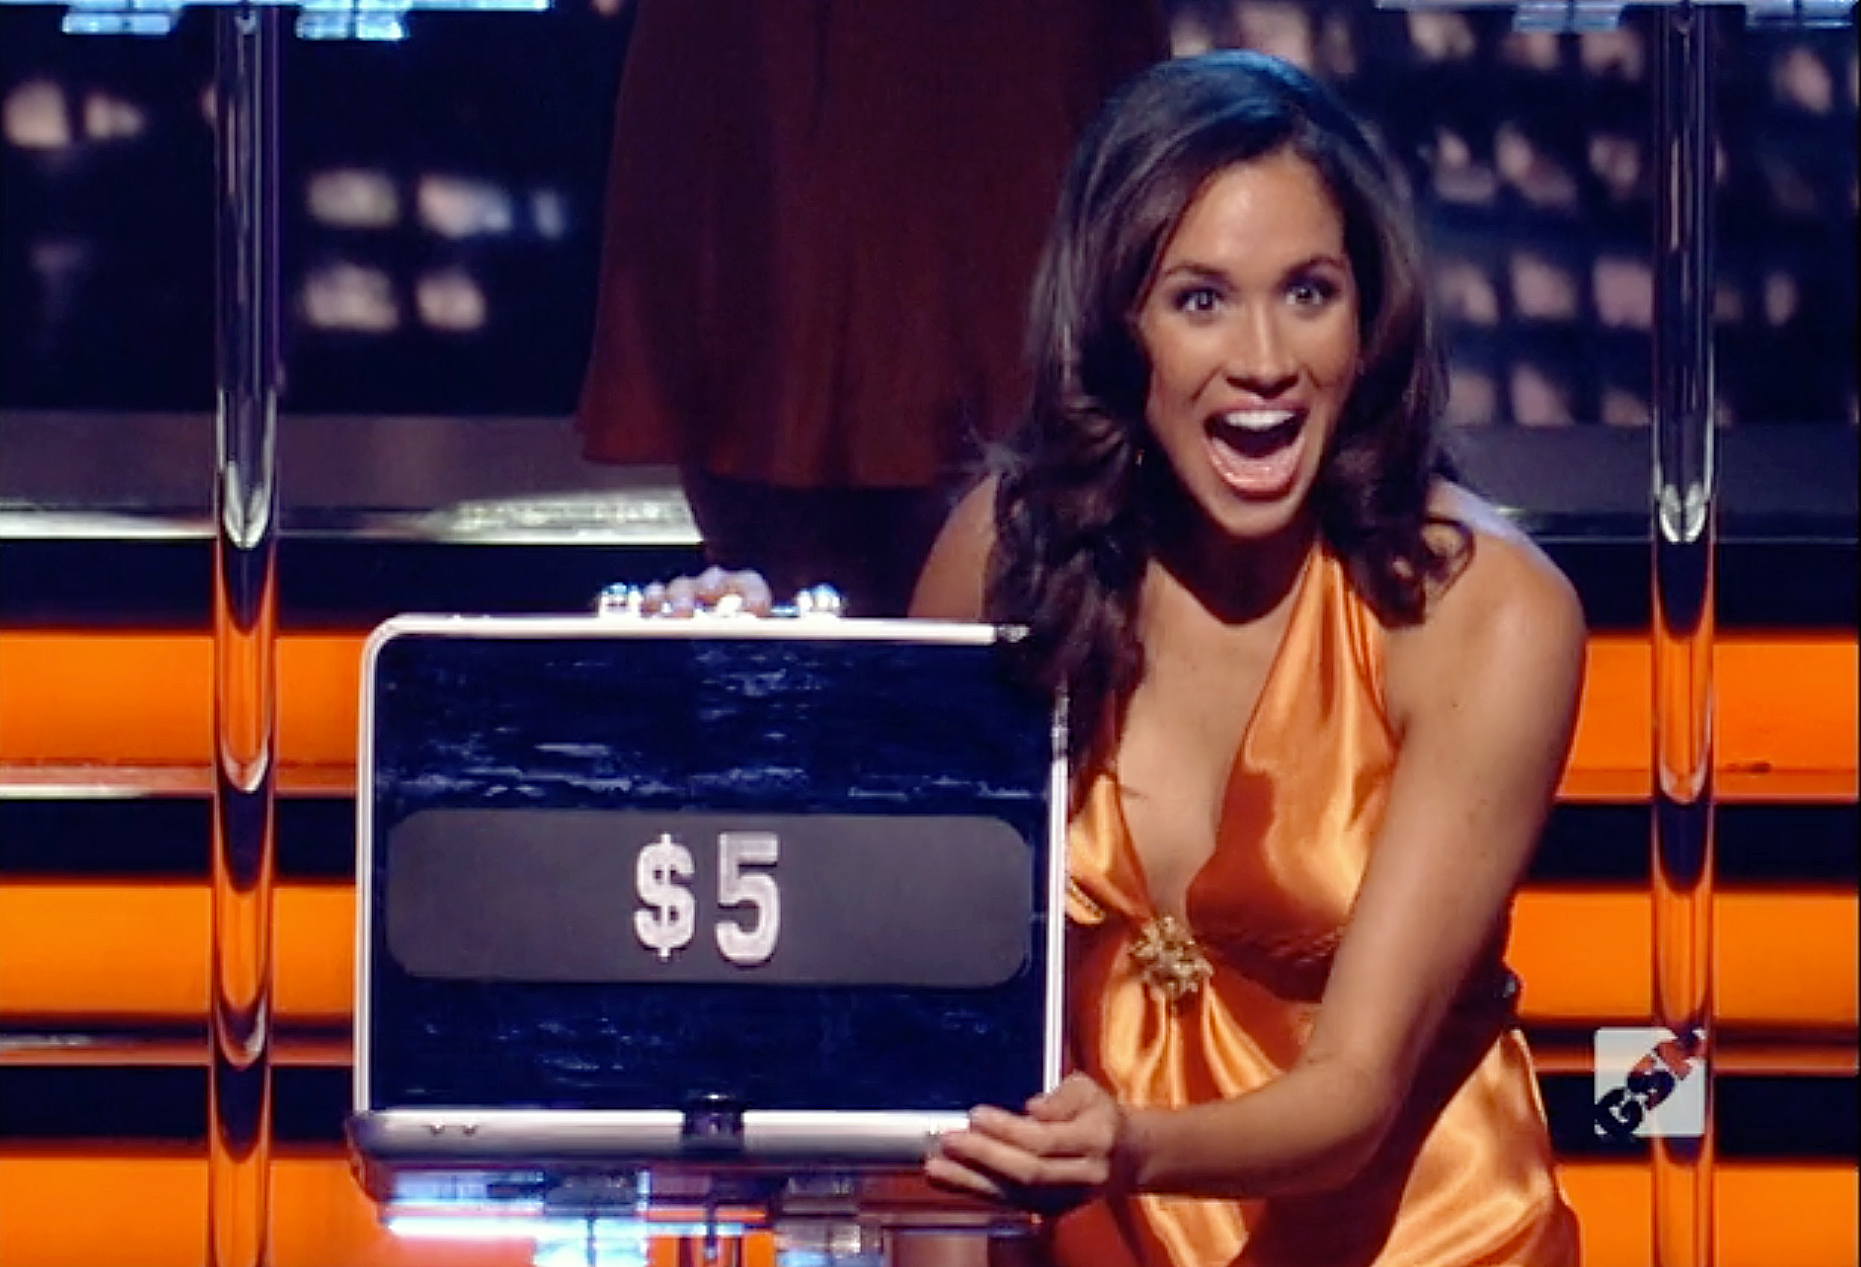 Meghan Markle Was On Deal Or No Deal And Looked Completely Different meghan markle deal or no deal